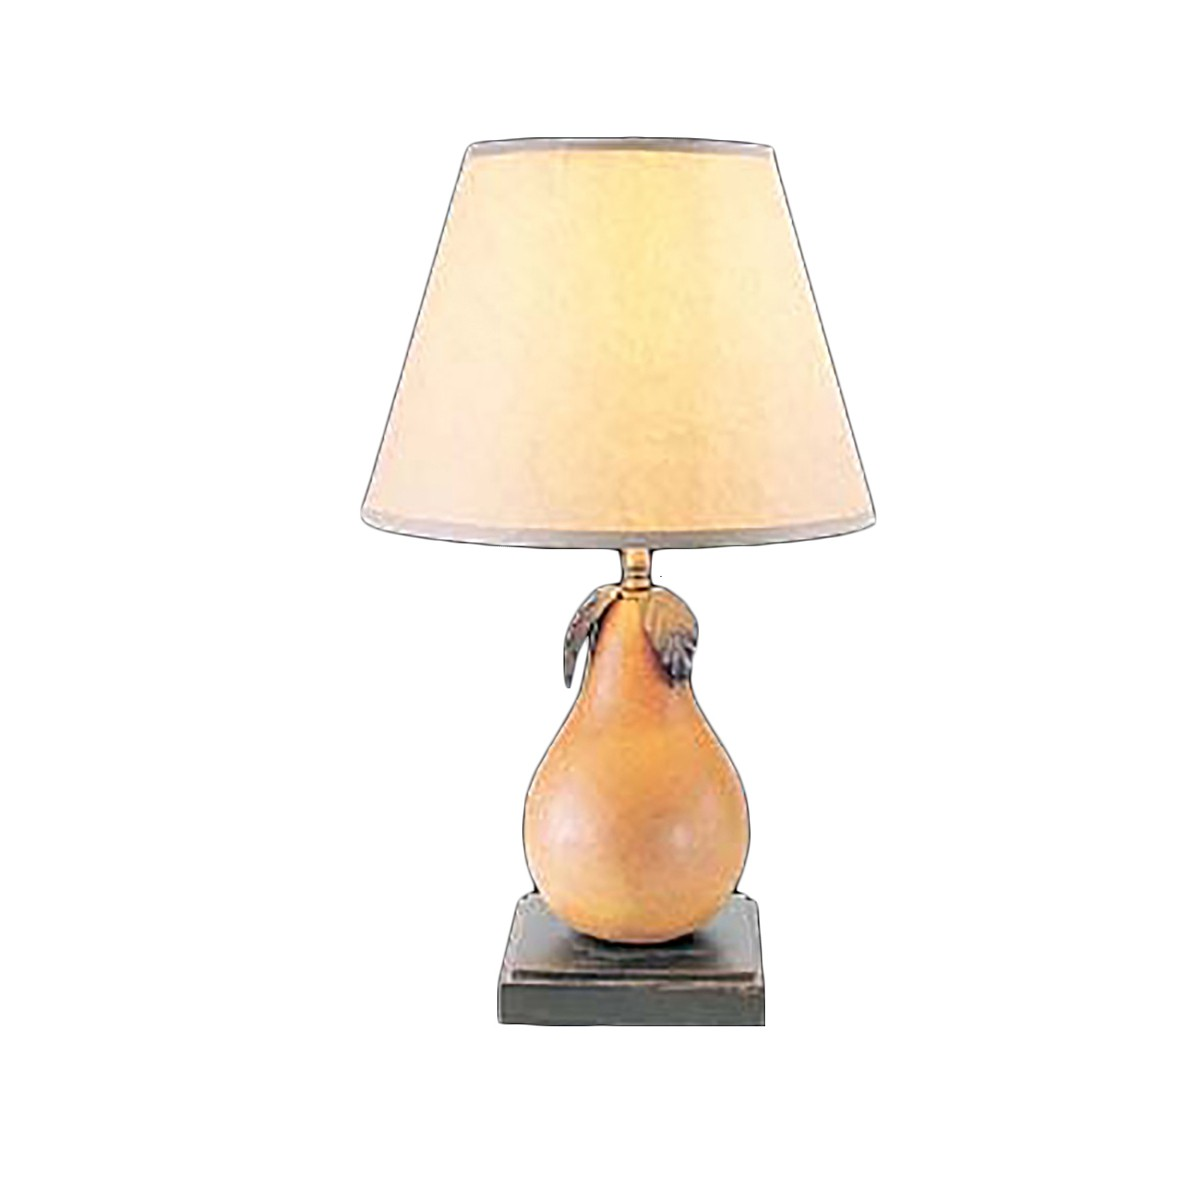 Lamp natural wood pear 16 78 h table lamp natural wood pear 16 78 h geotapseo Gallery